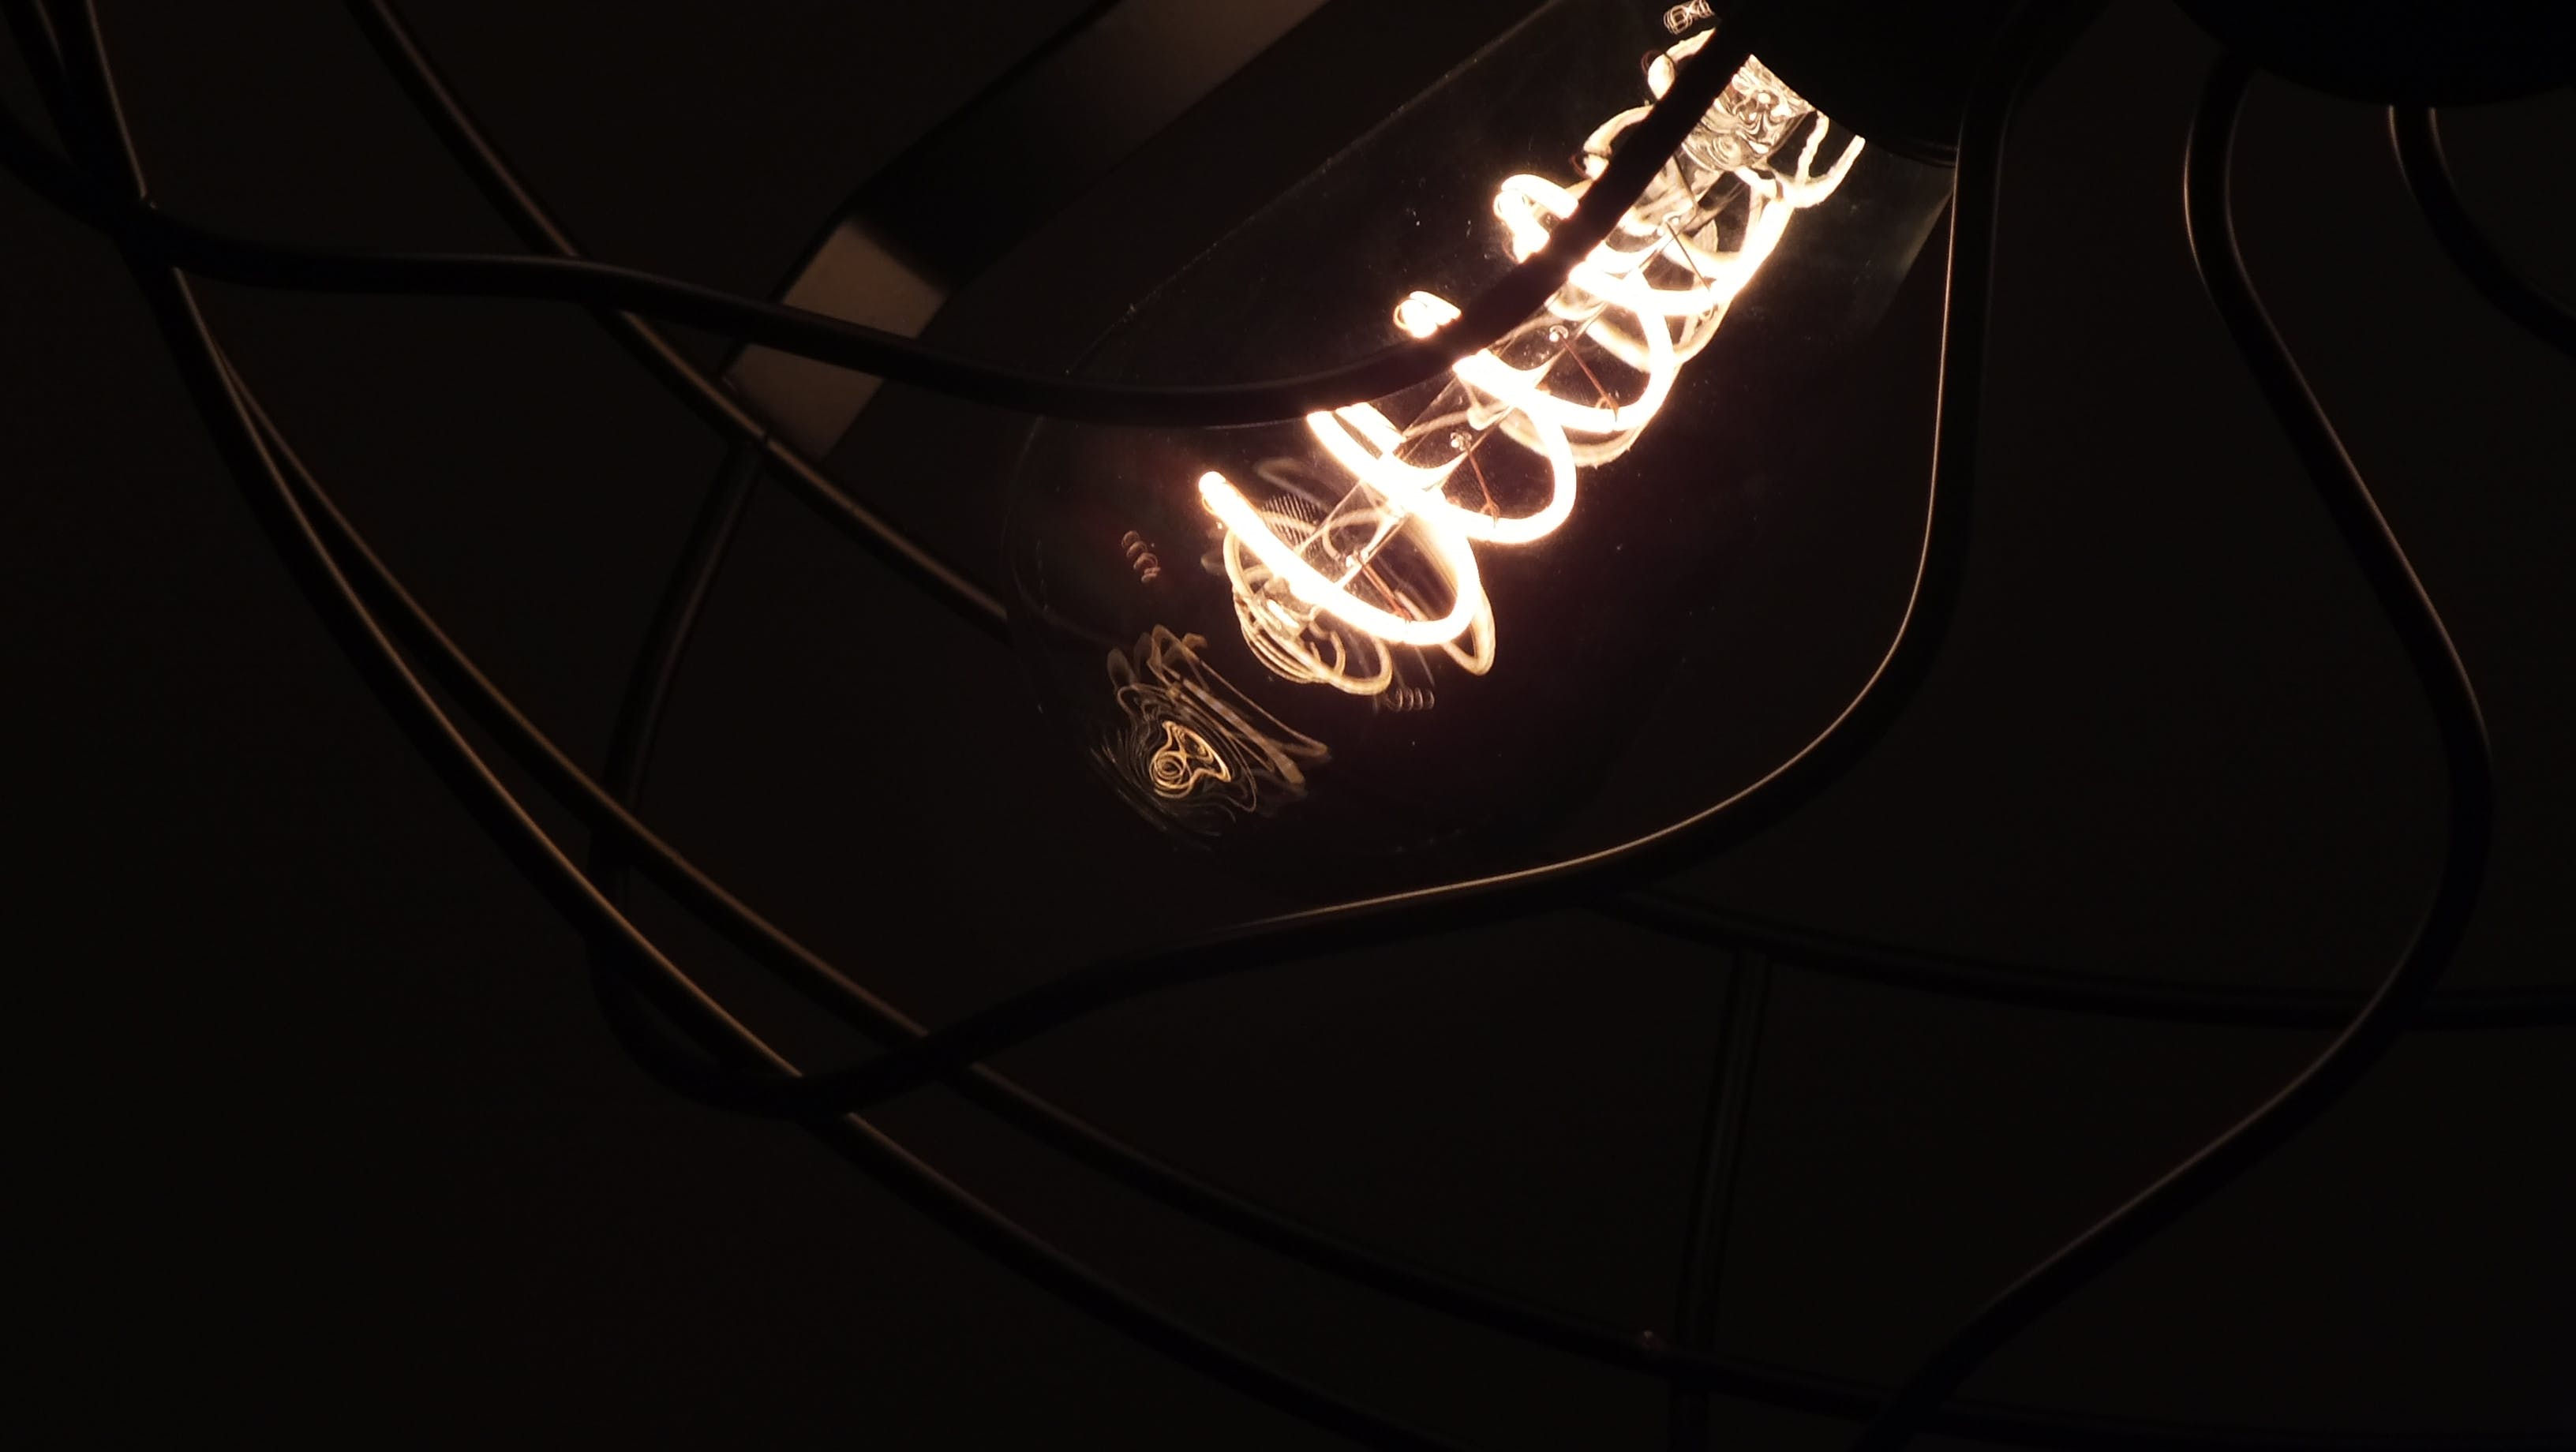 Free stock photo of chandelier, chandeliers, light, light bulb